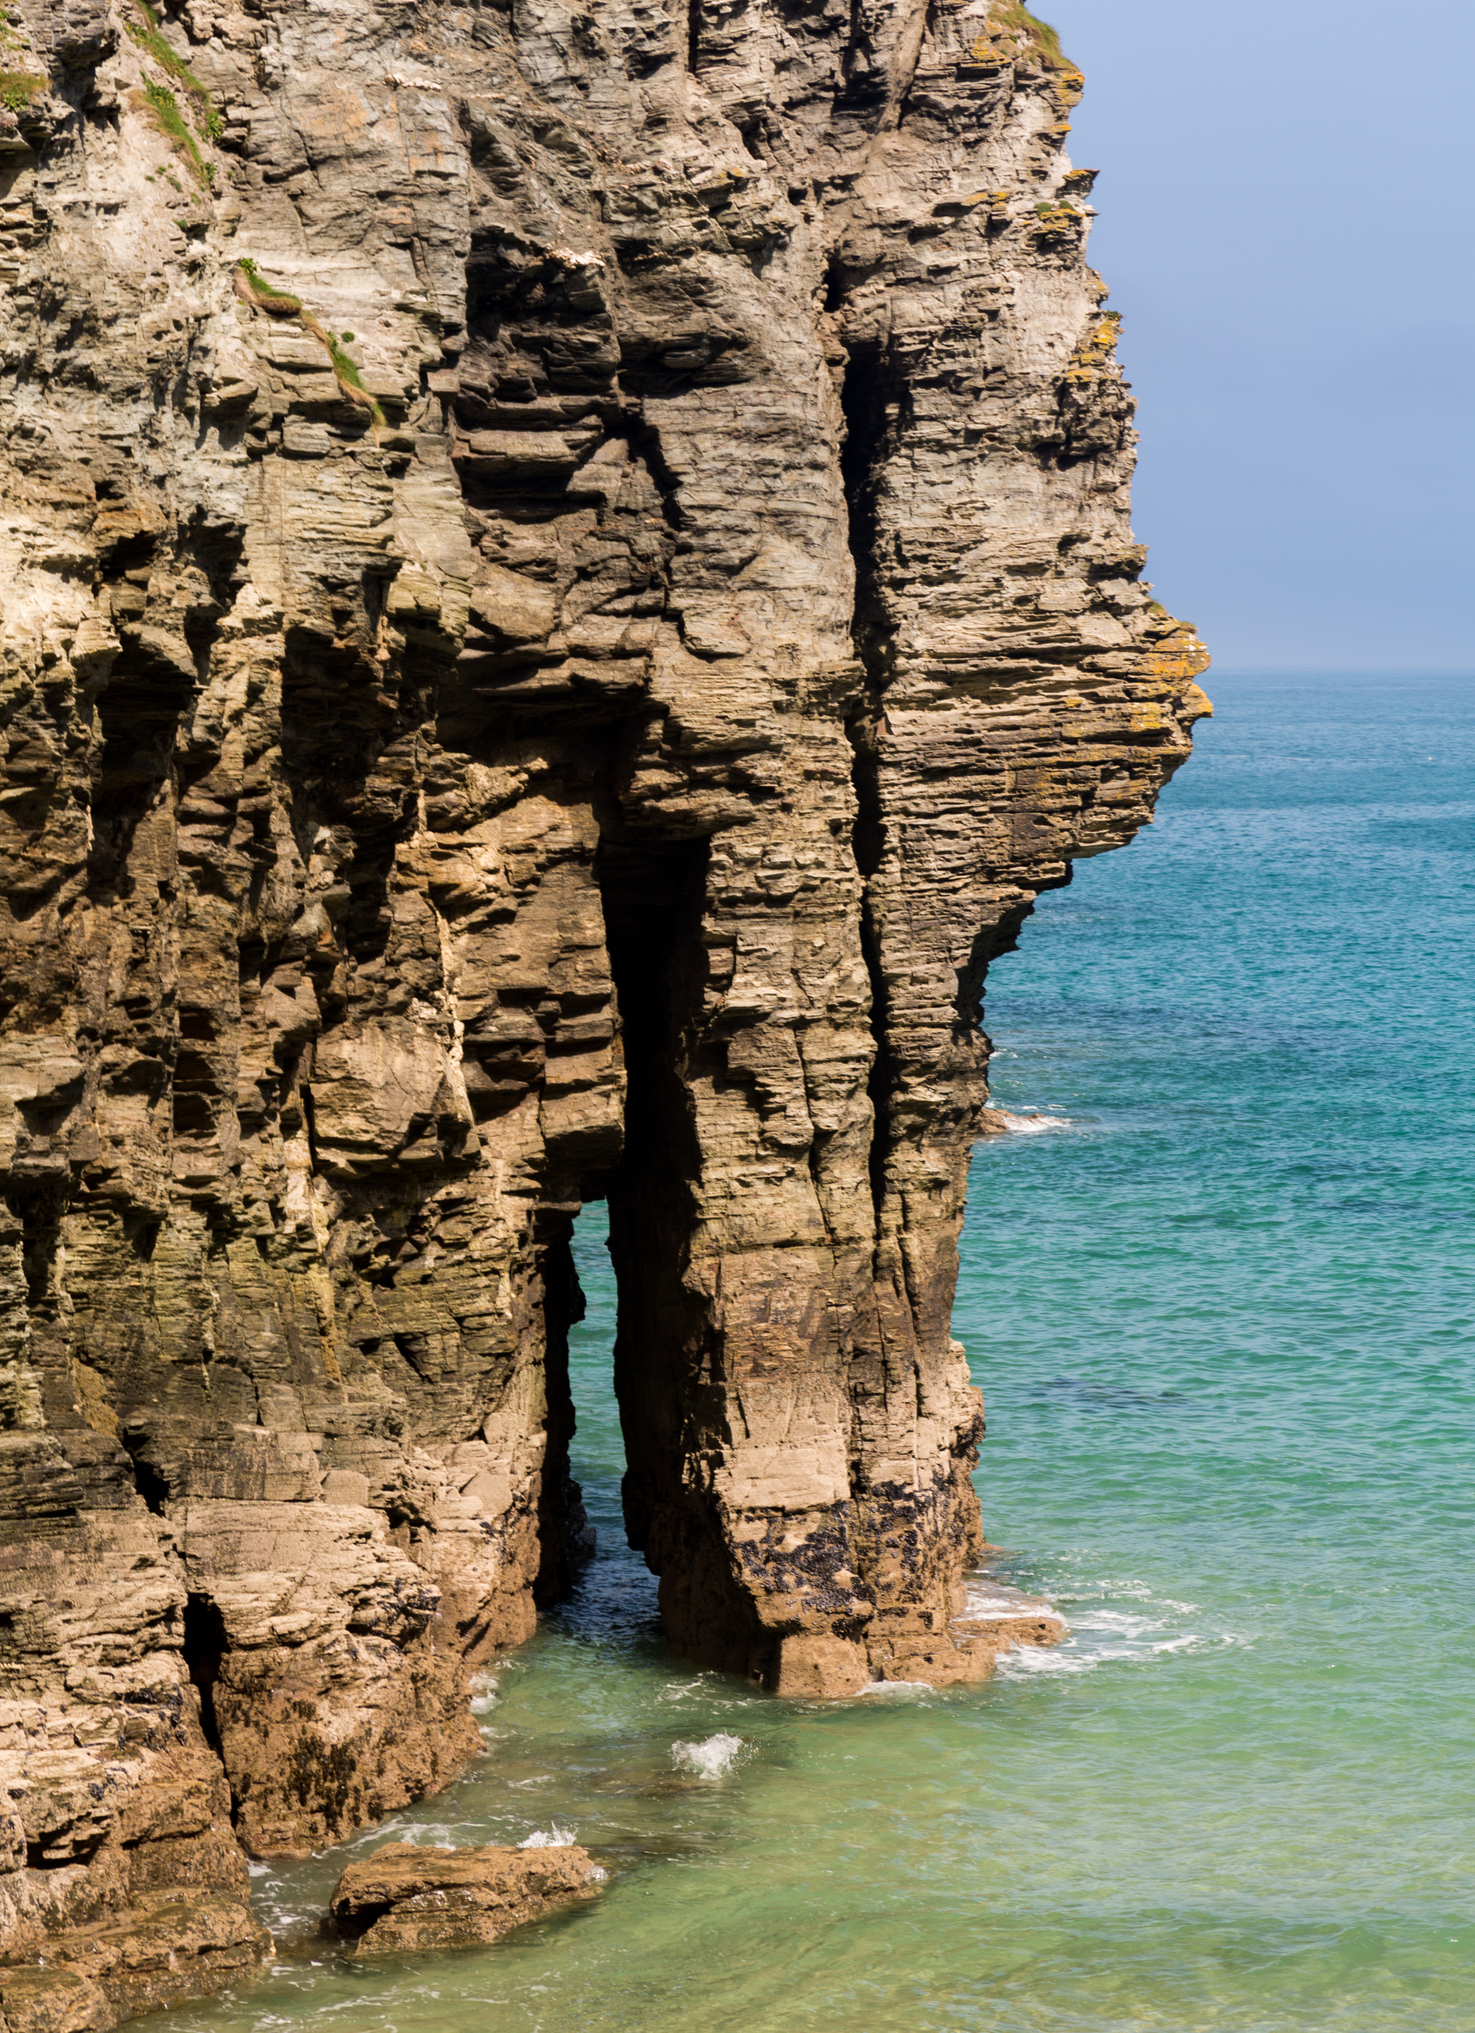 Sea Arch and cliffs jutting into the sea, Cornwall, England, UK